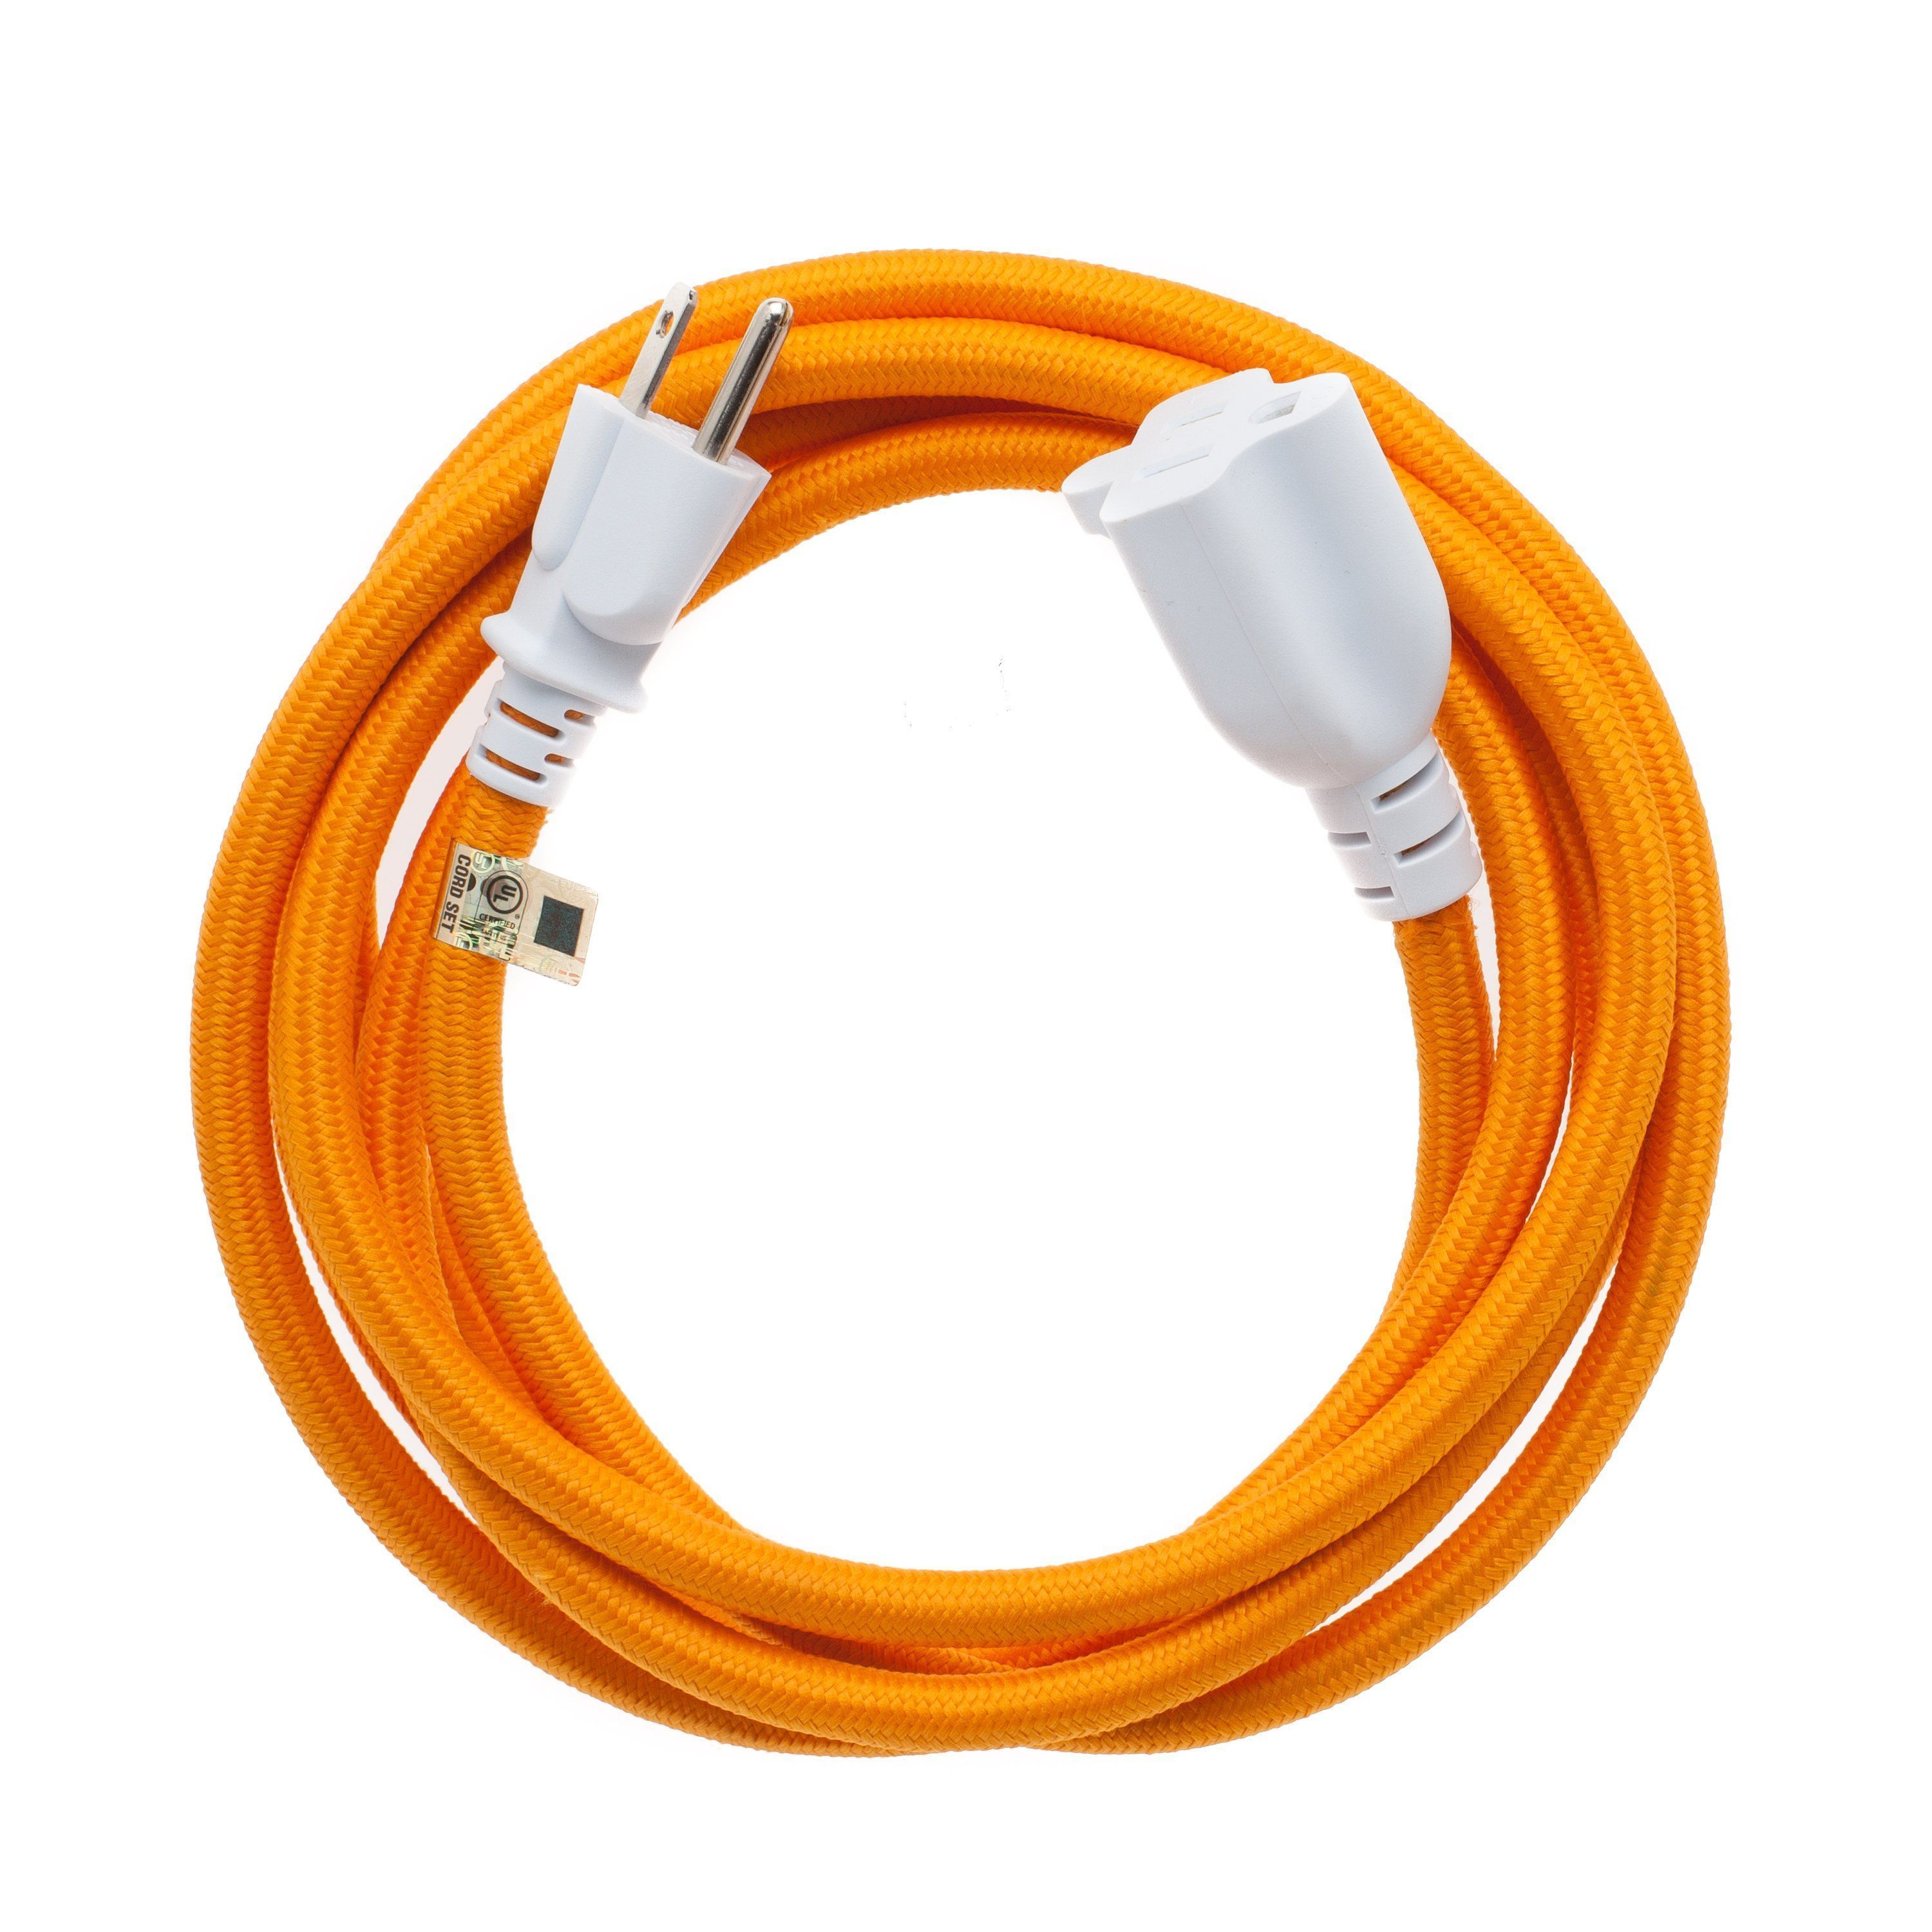 Cloth Covered Extension Cord Extension Cord Extensions Cord